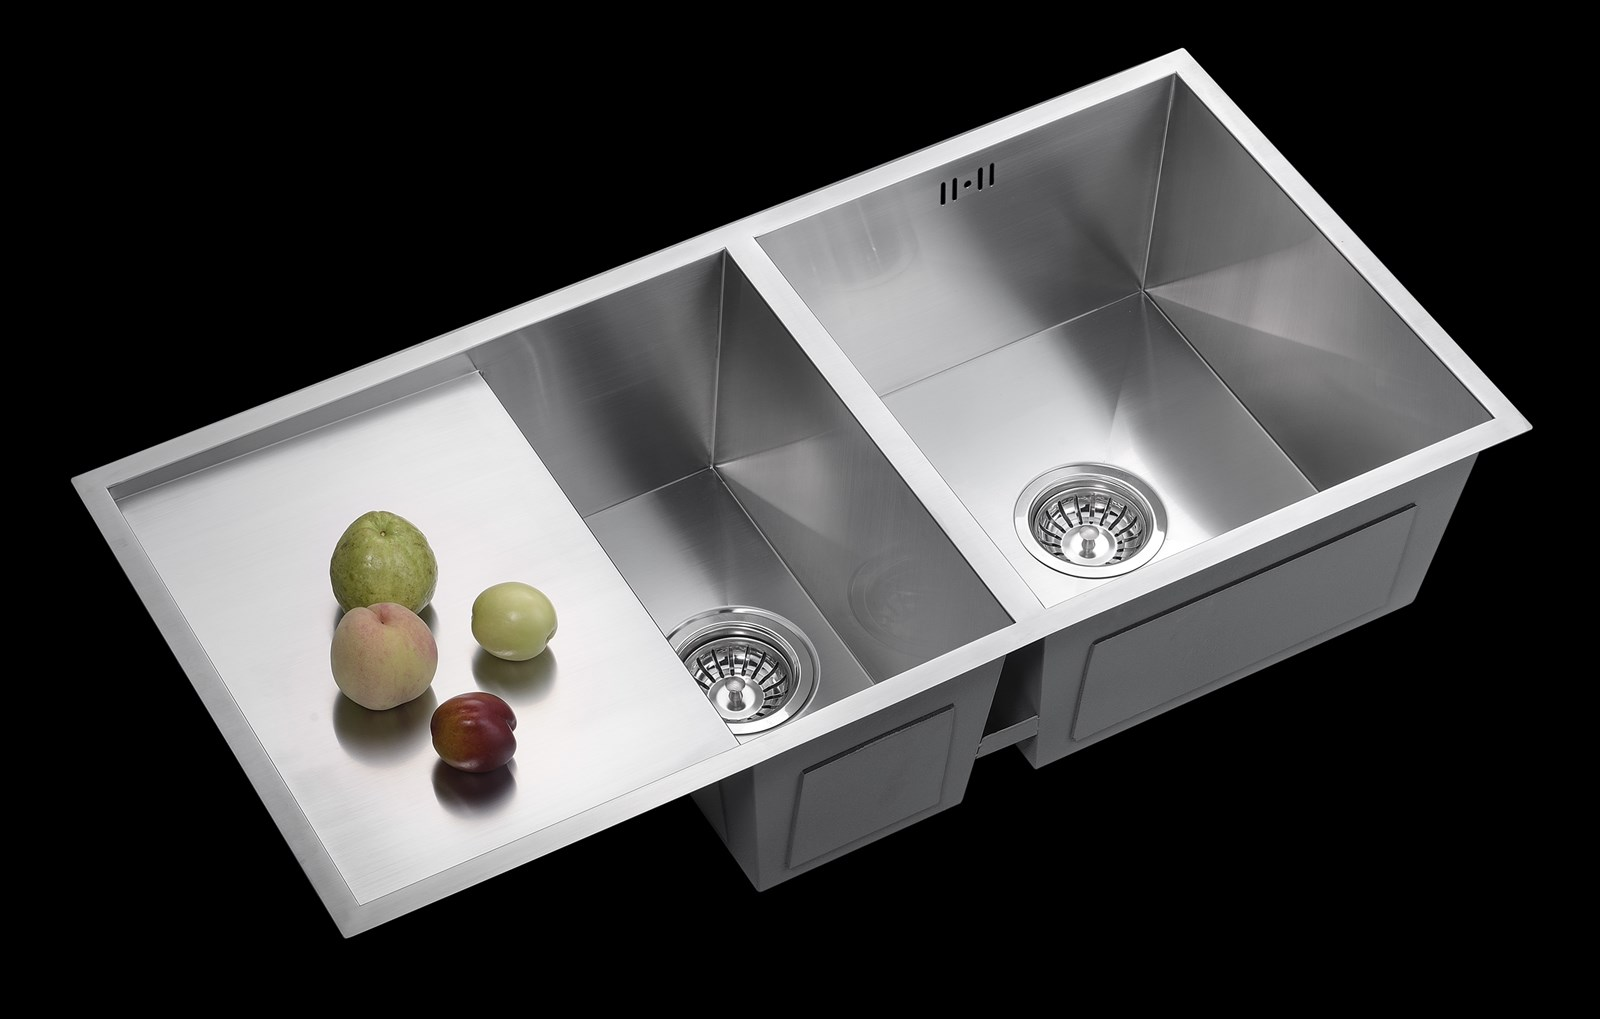 201 and 304 stainless steel raw material double bowl above counter polish without faucet hole lay one edge bulk package